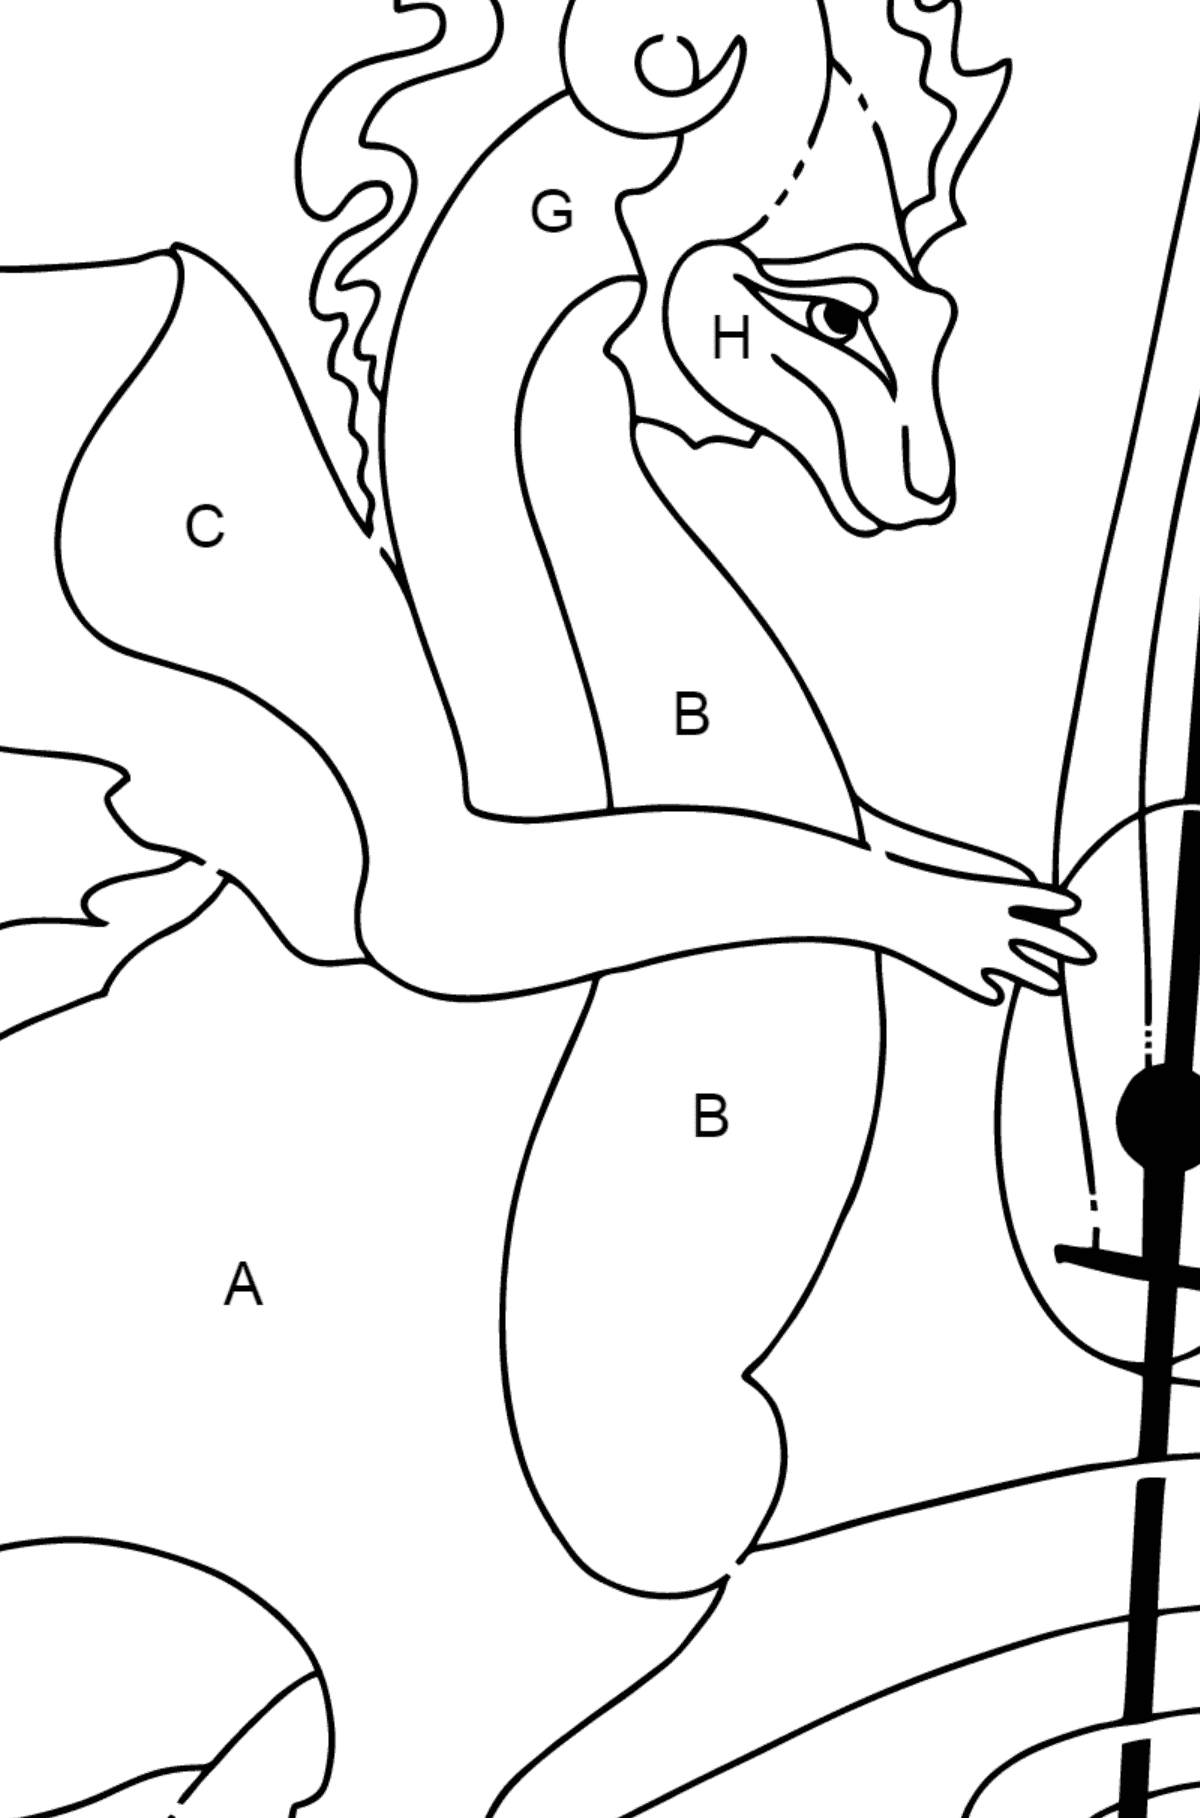 Coloring Page - A Dragon is Composing Music - Coloring by Letters for Kids